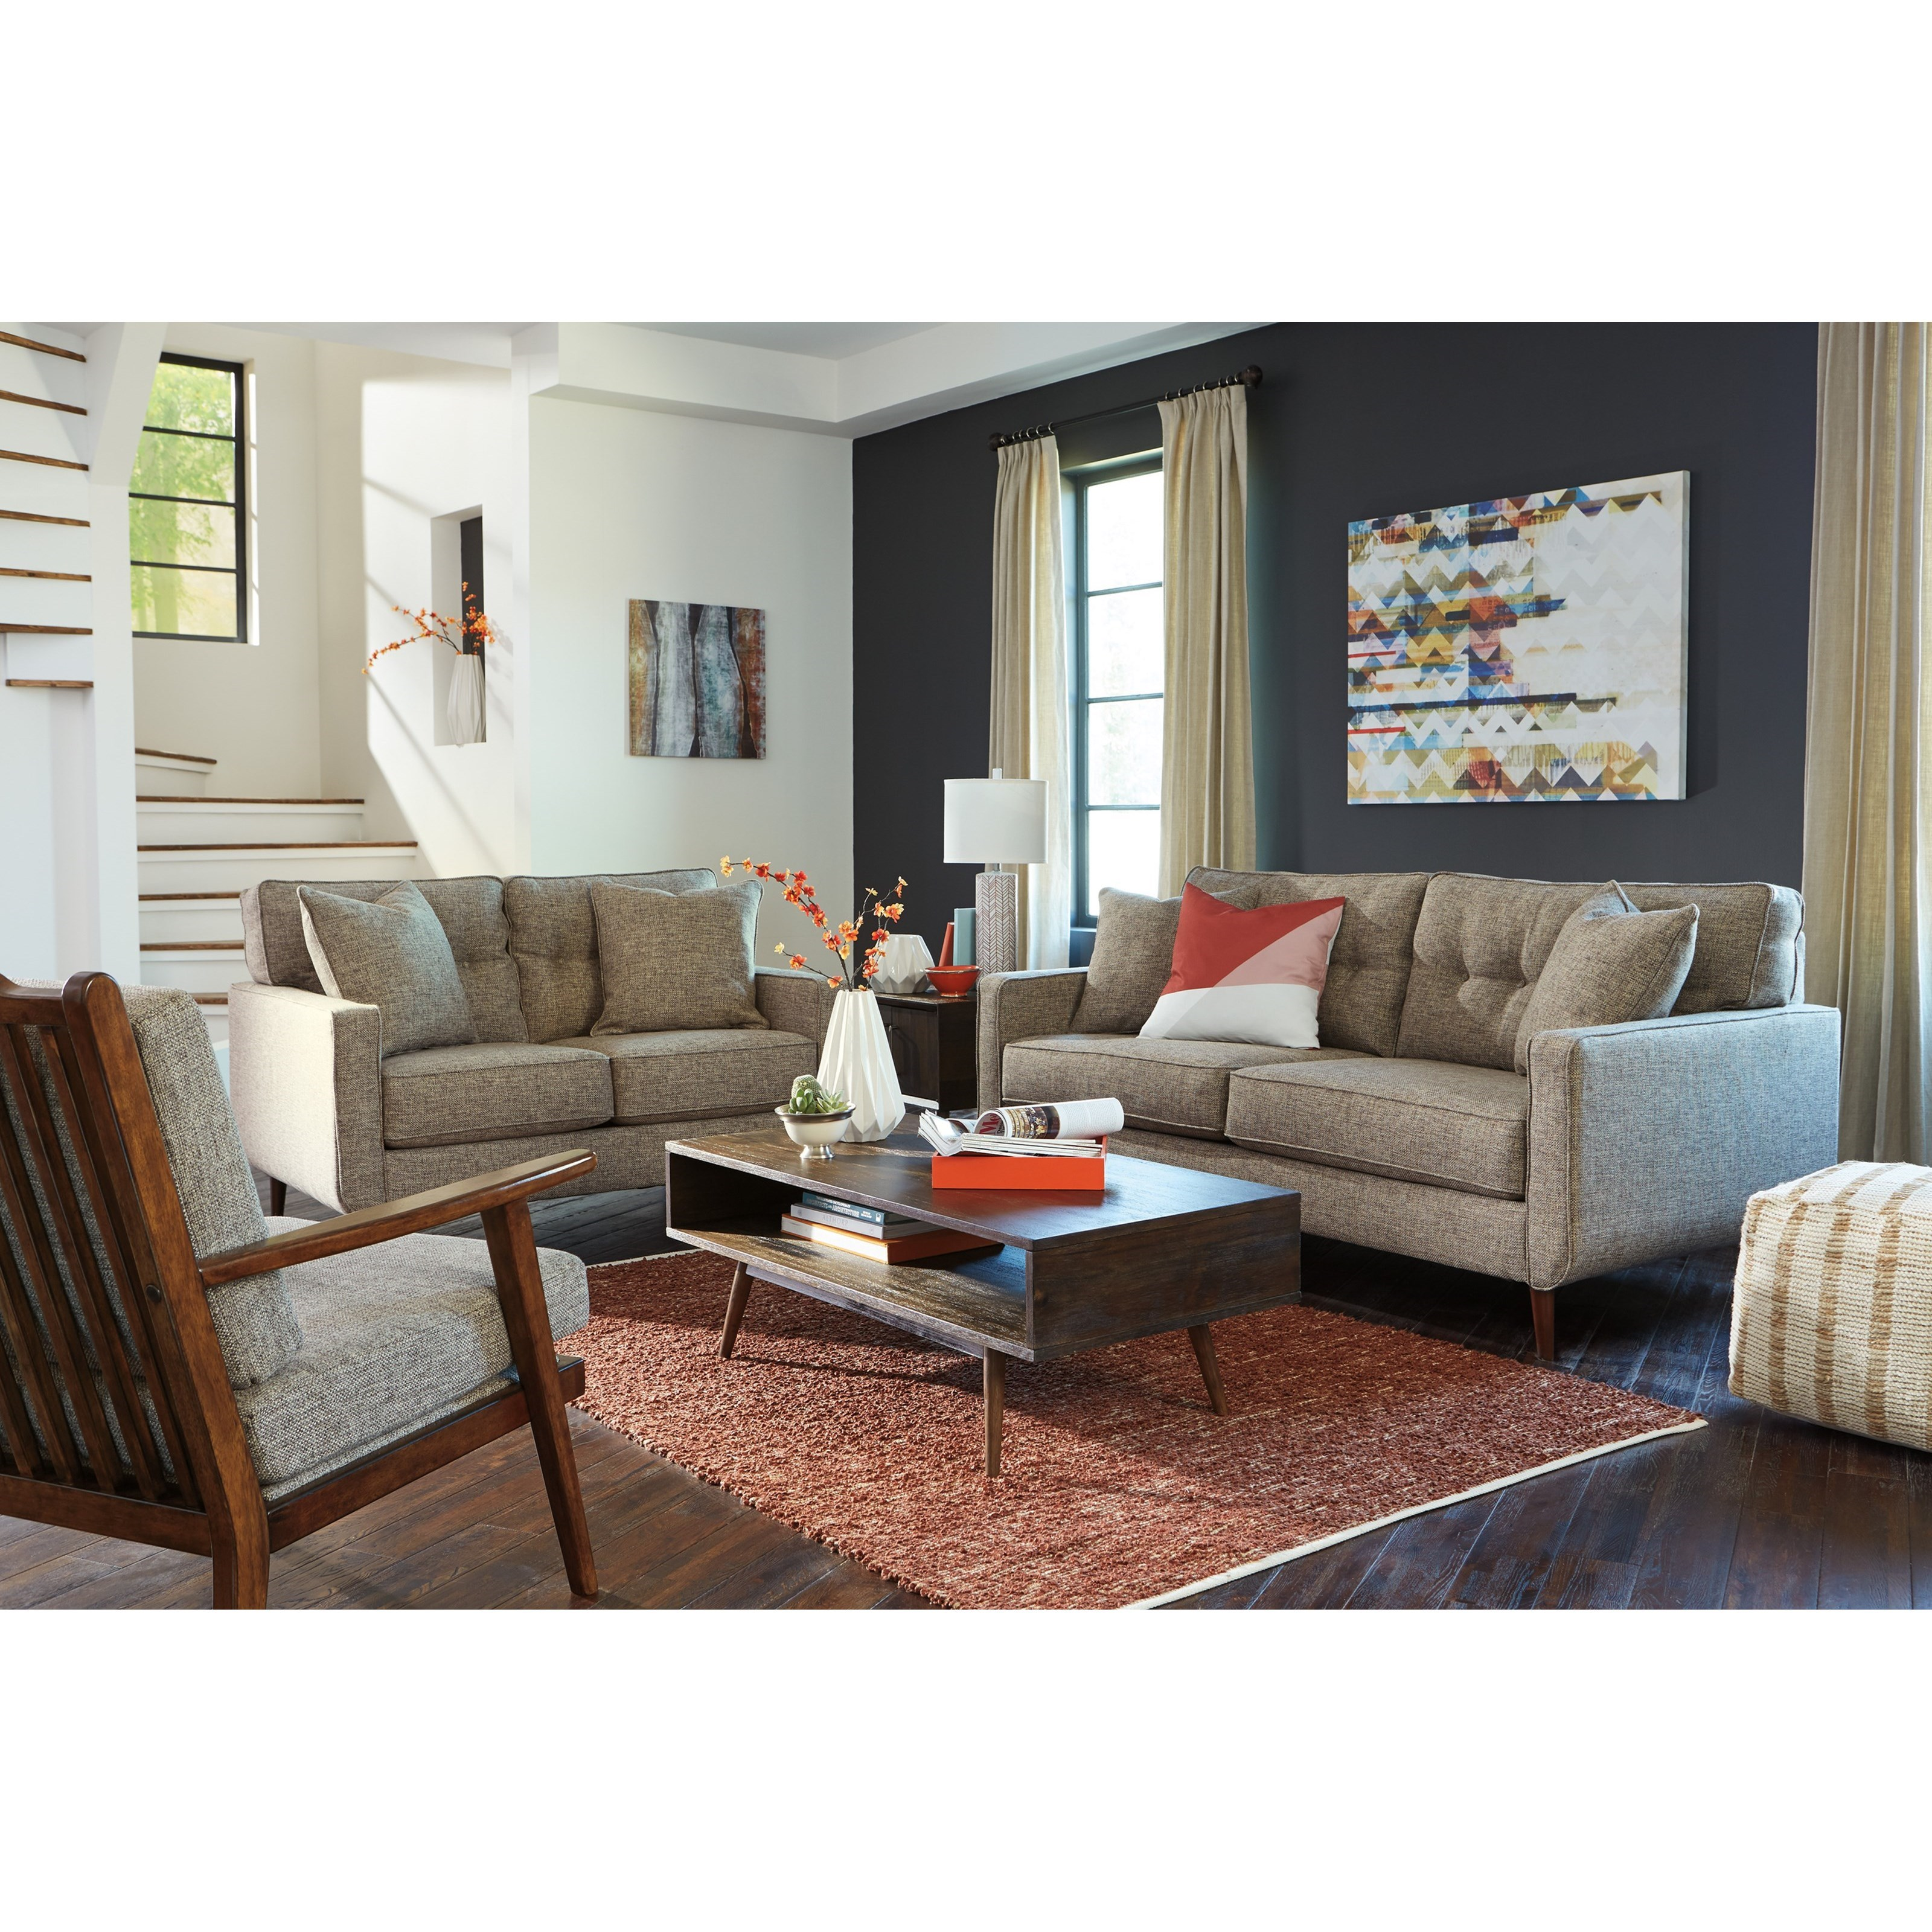 Dahra Stationary Living Room Group by Benchcraft at HomeWorld Furniture